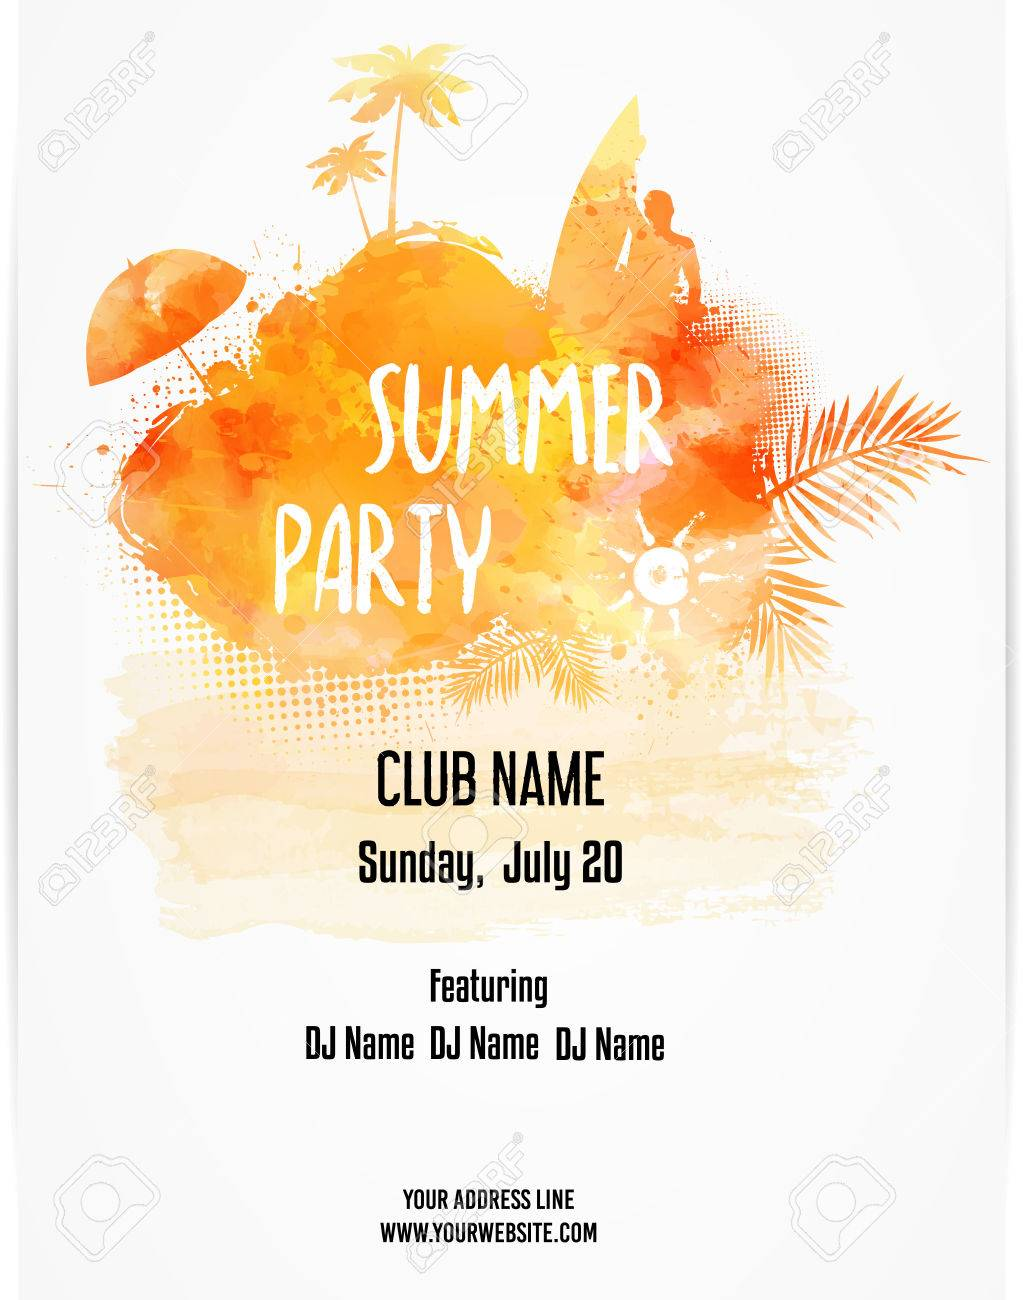 Party Poster Template For Summer Orange Colored With Watercolor Imitation Design Vector Illustration